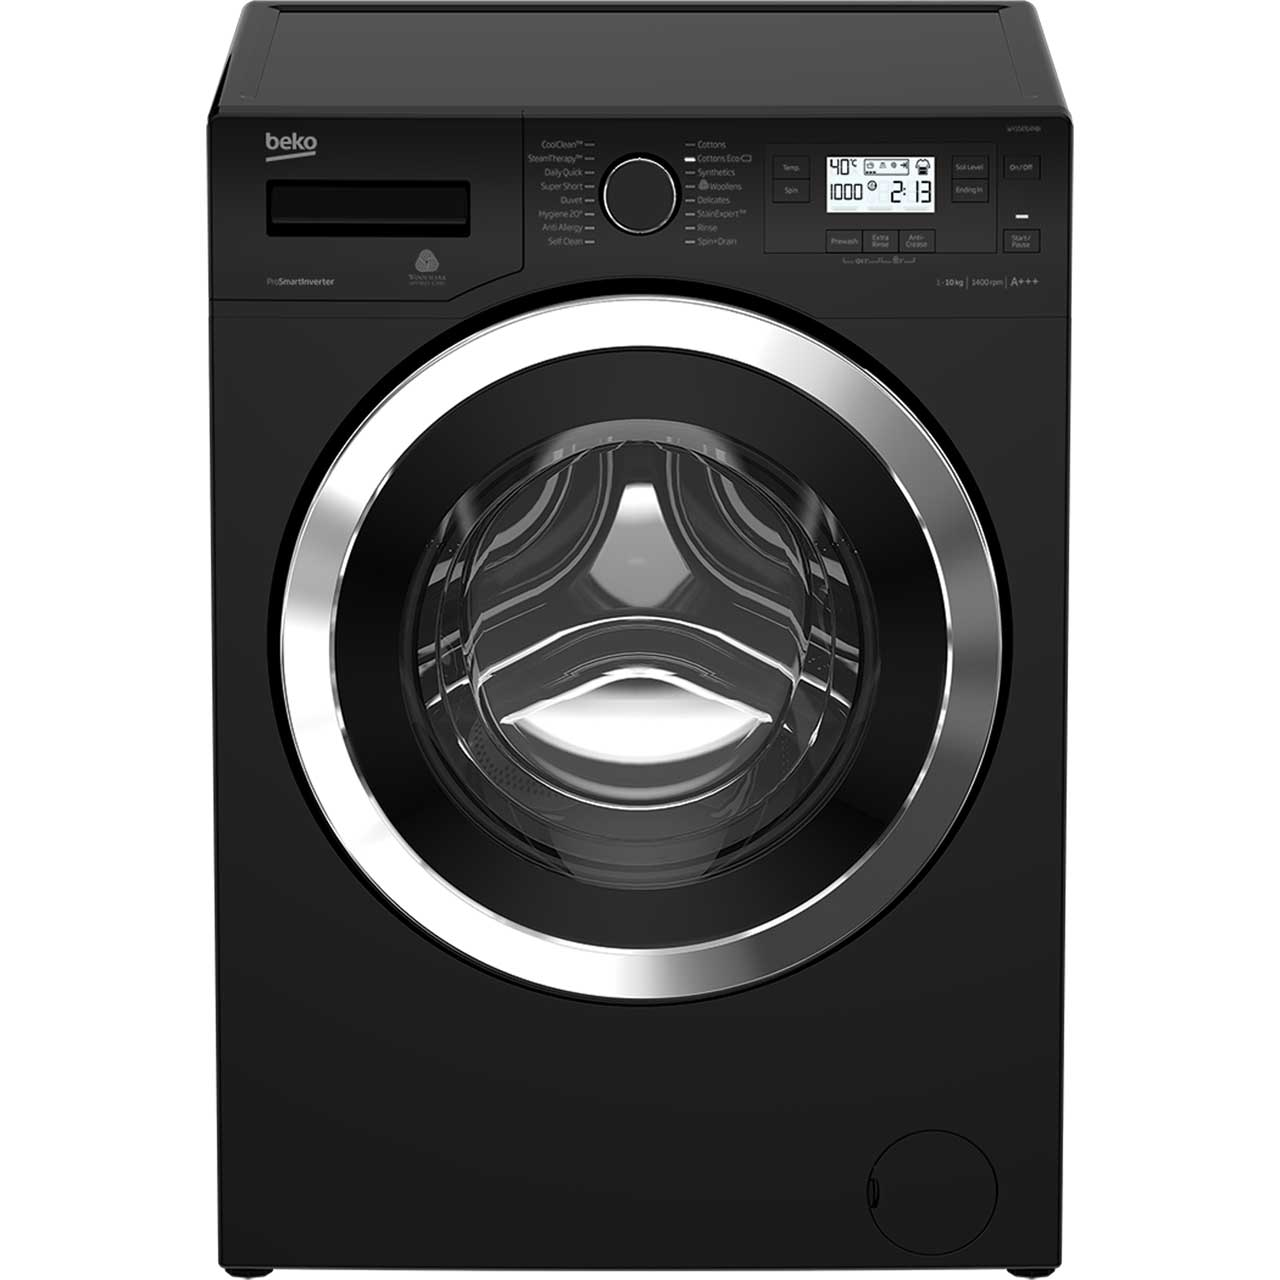 Beko WY104764MB 10Kg Washing Machine with 1400 rpm - Black